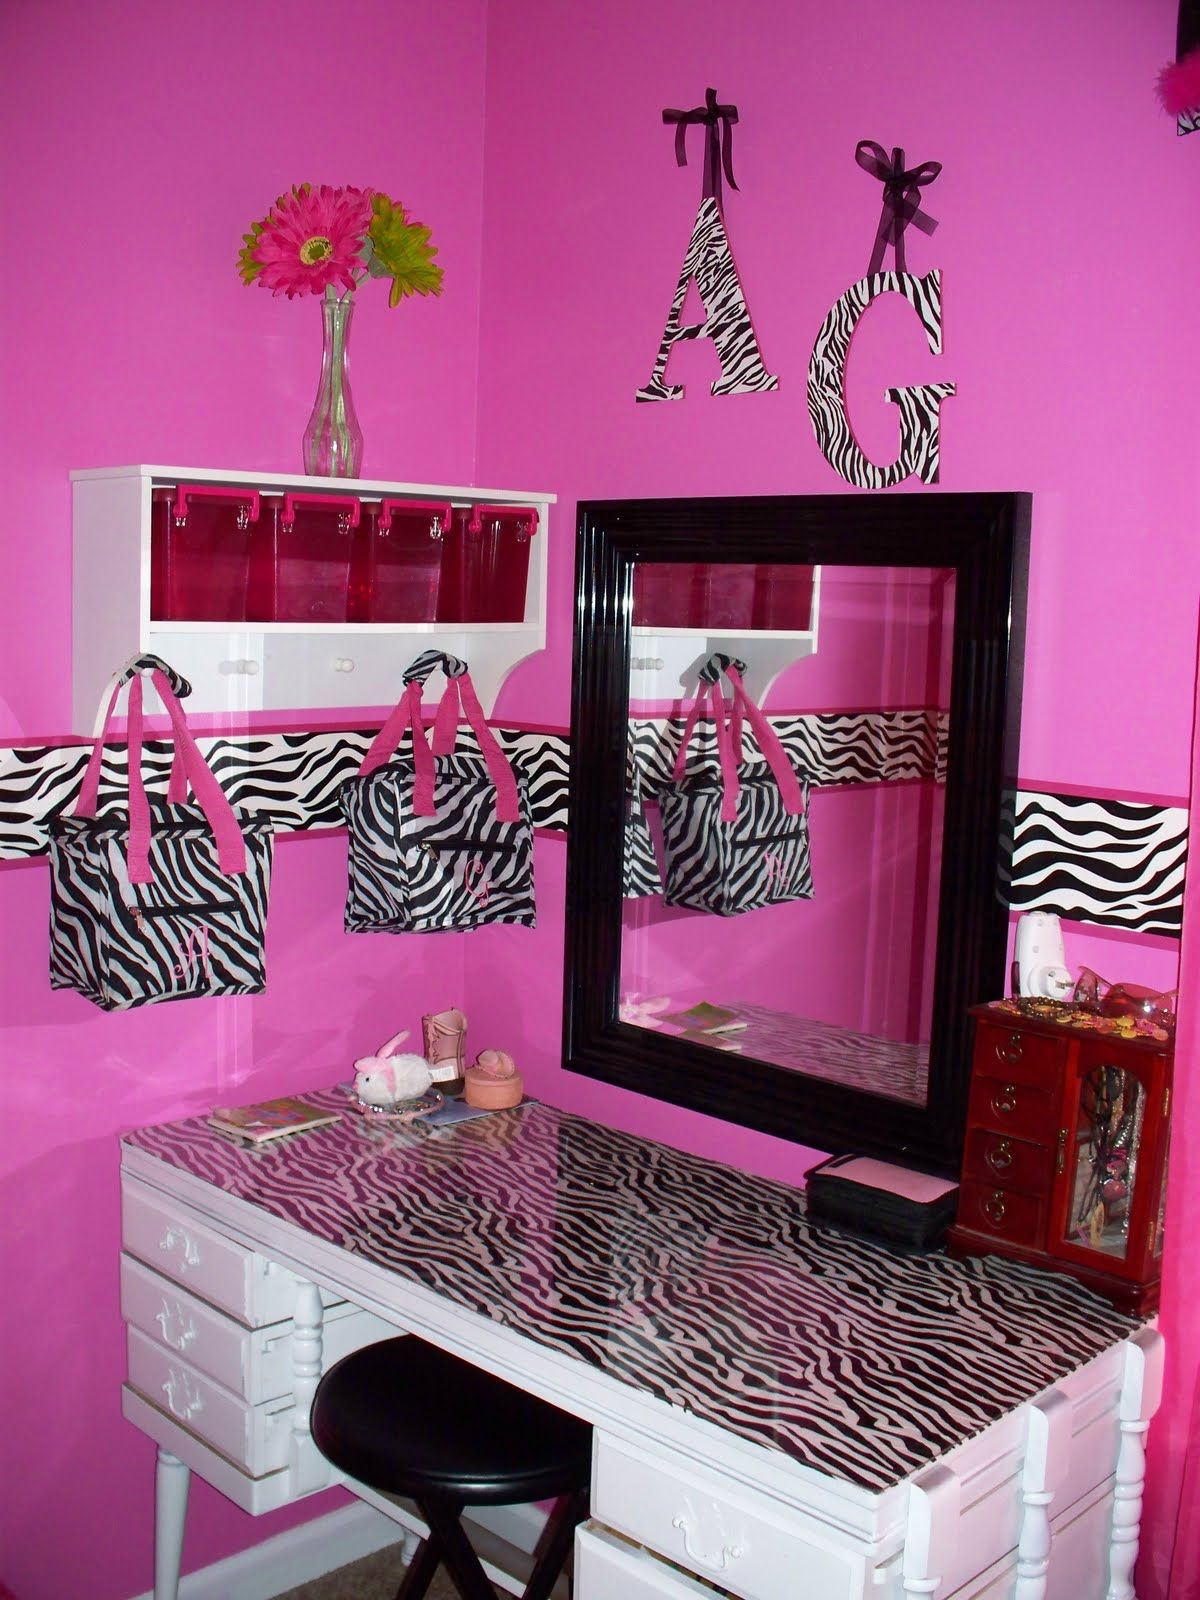 Mommy Lou Who Hot Pink Zebra Room Print Bedroom Curtains Children S Art How To Decorate With Animal